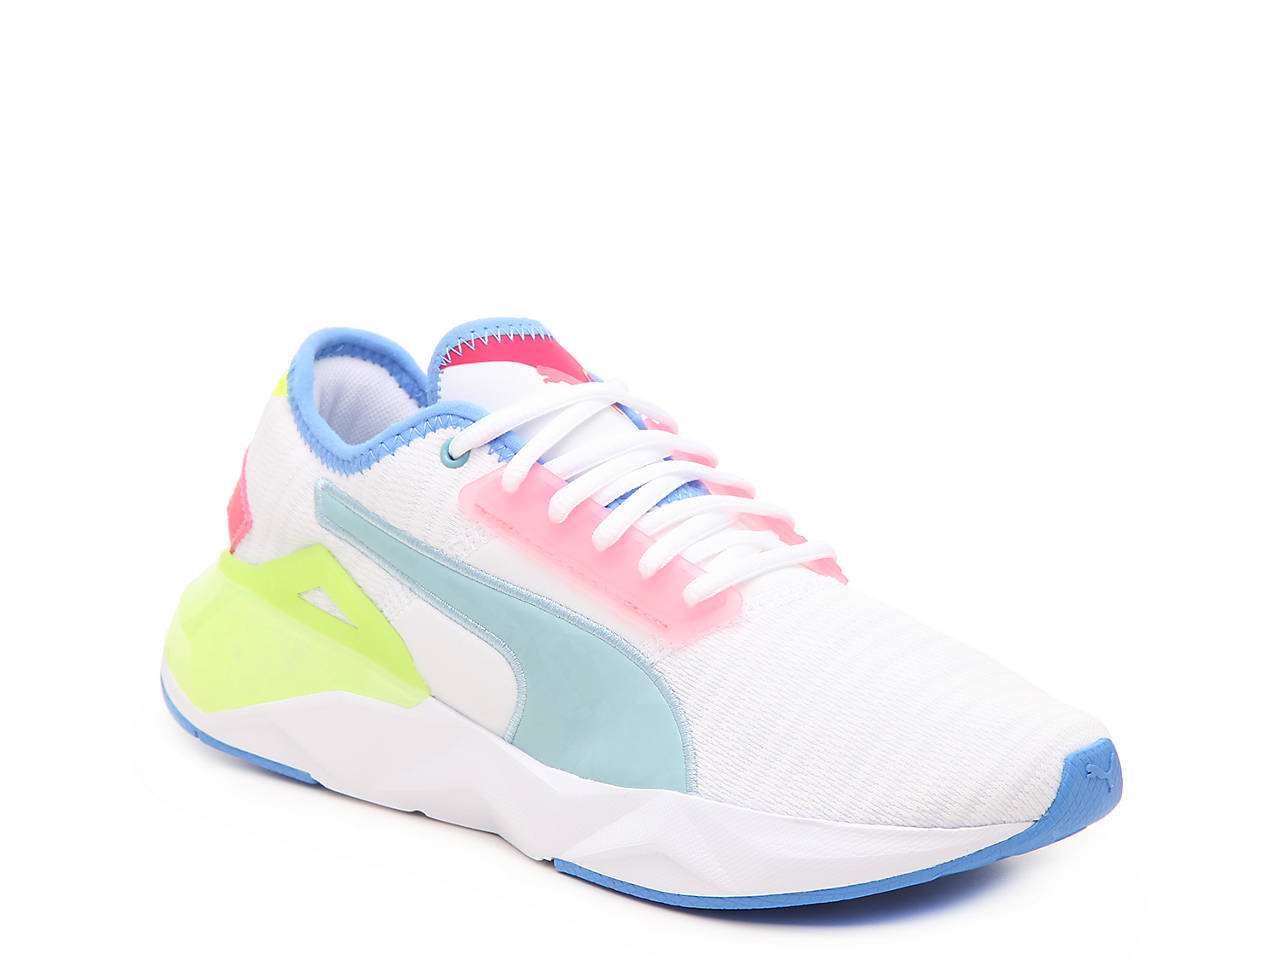 08a57e9ccb Cell Plasmic Training Shoe - Women's